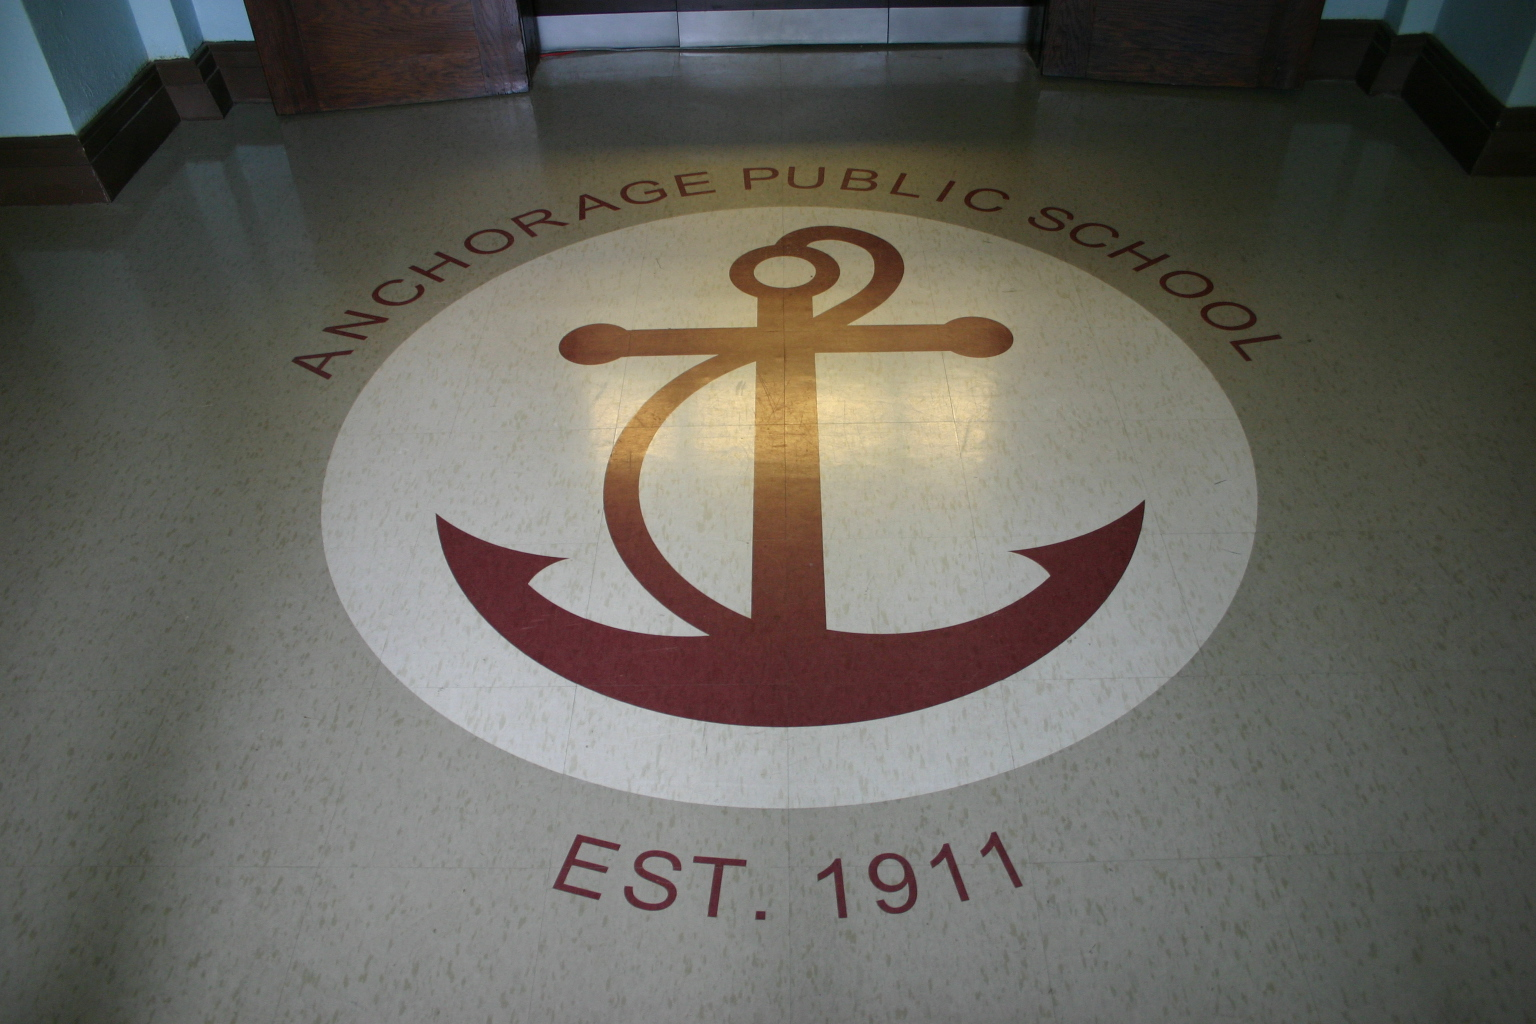 Anchorage Public School Crest